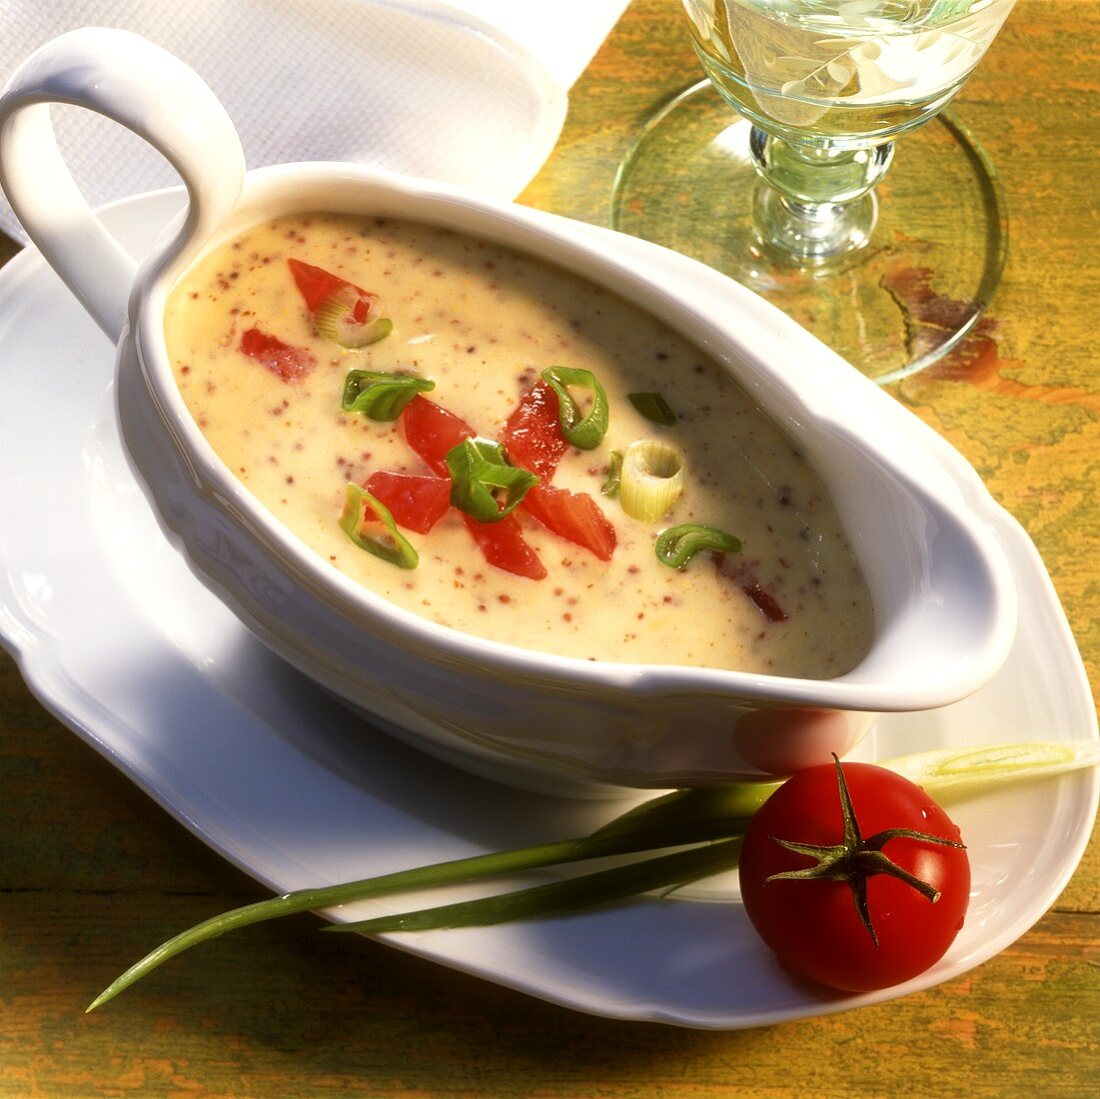 Mustard sauce with tomatoes and spring onions in sauce-boat